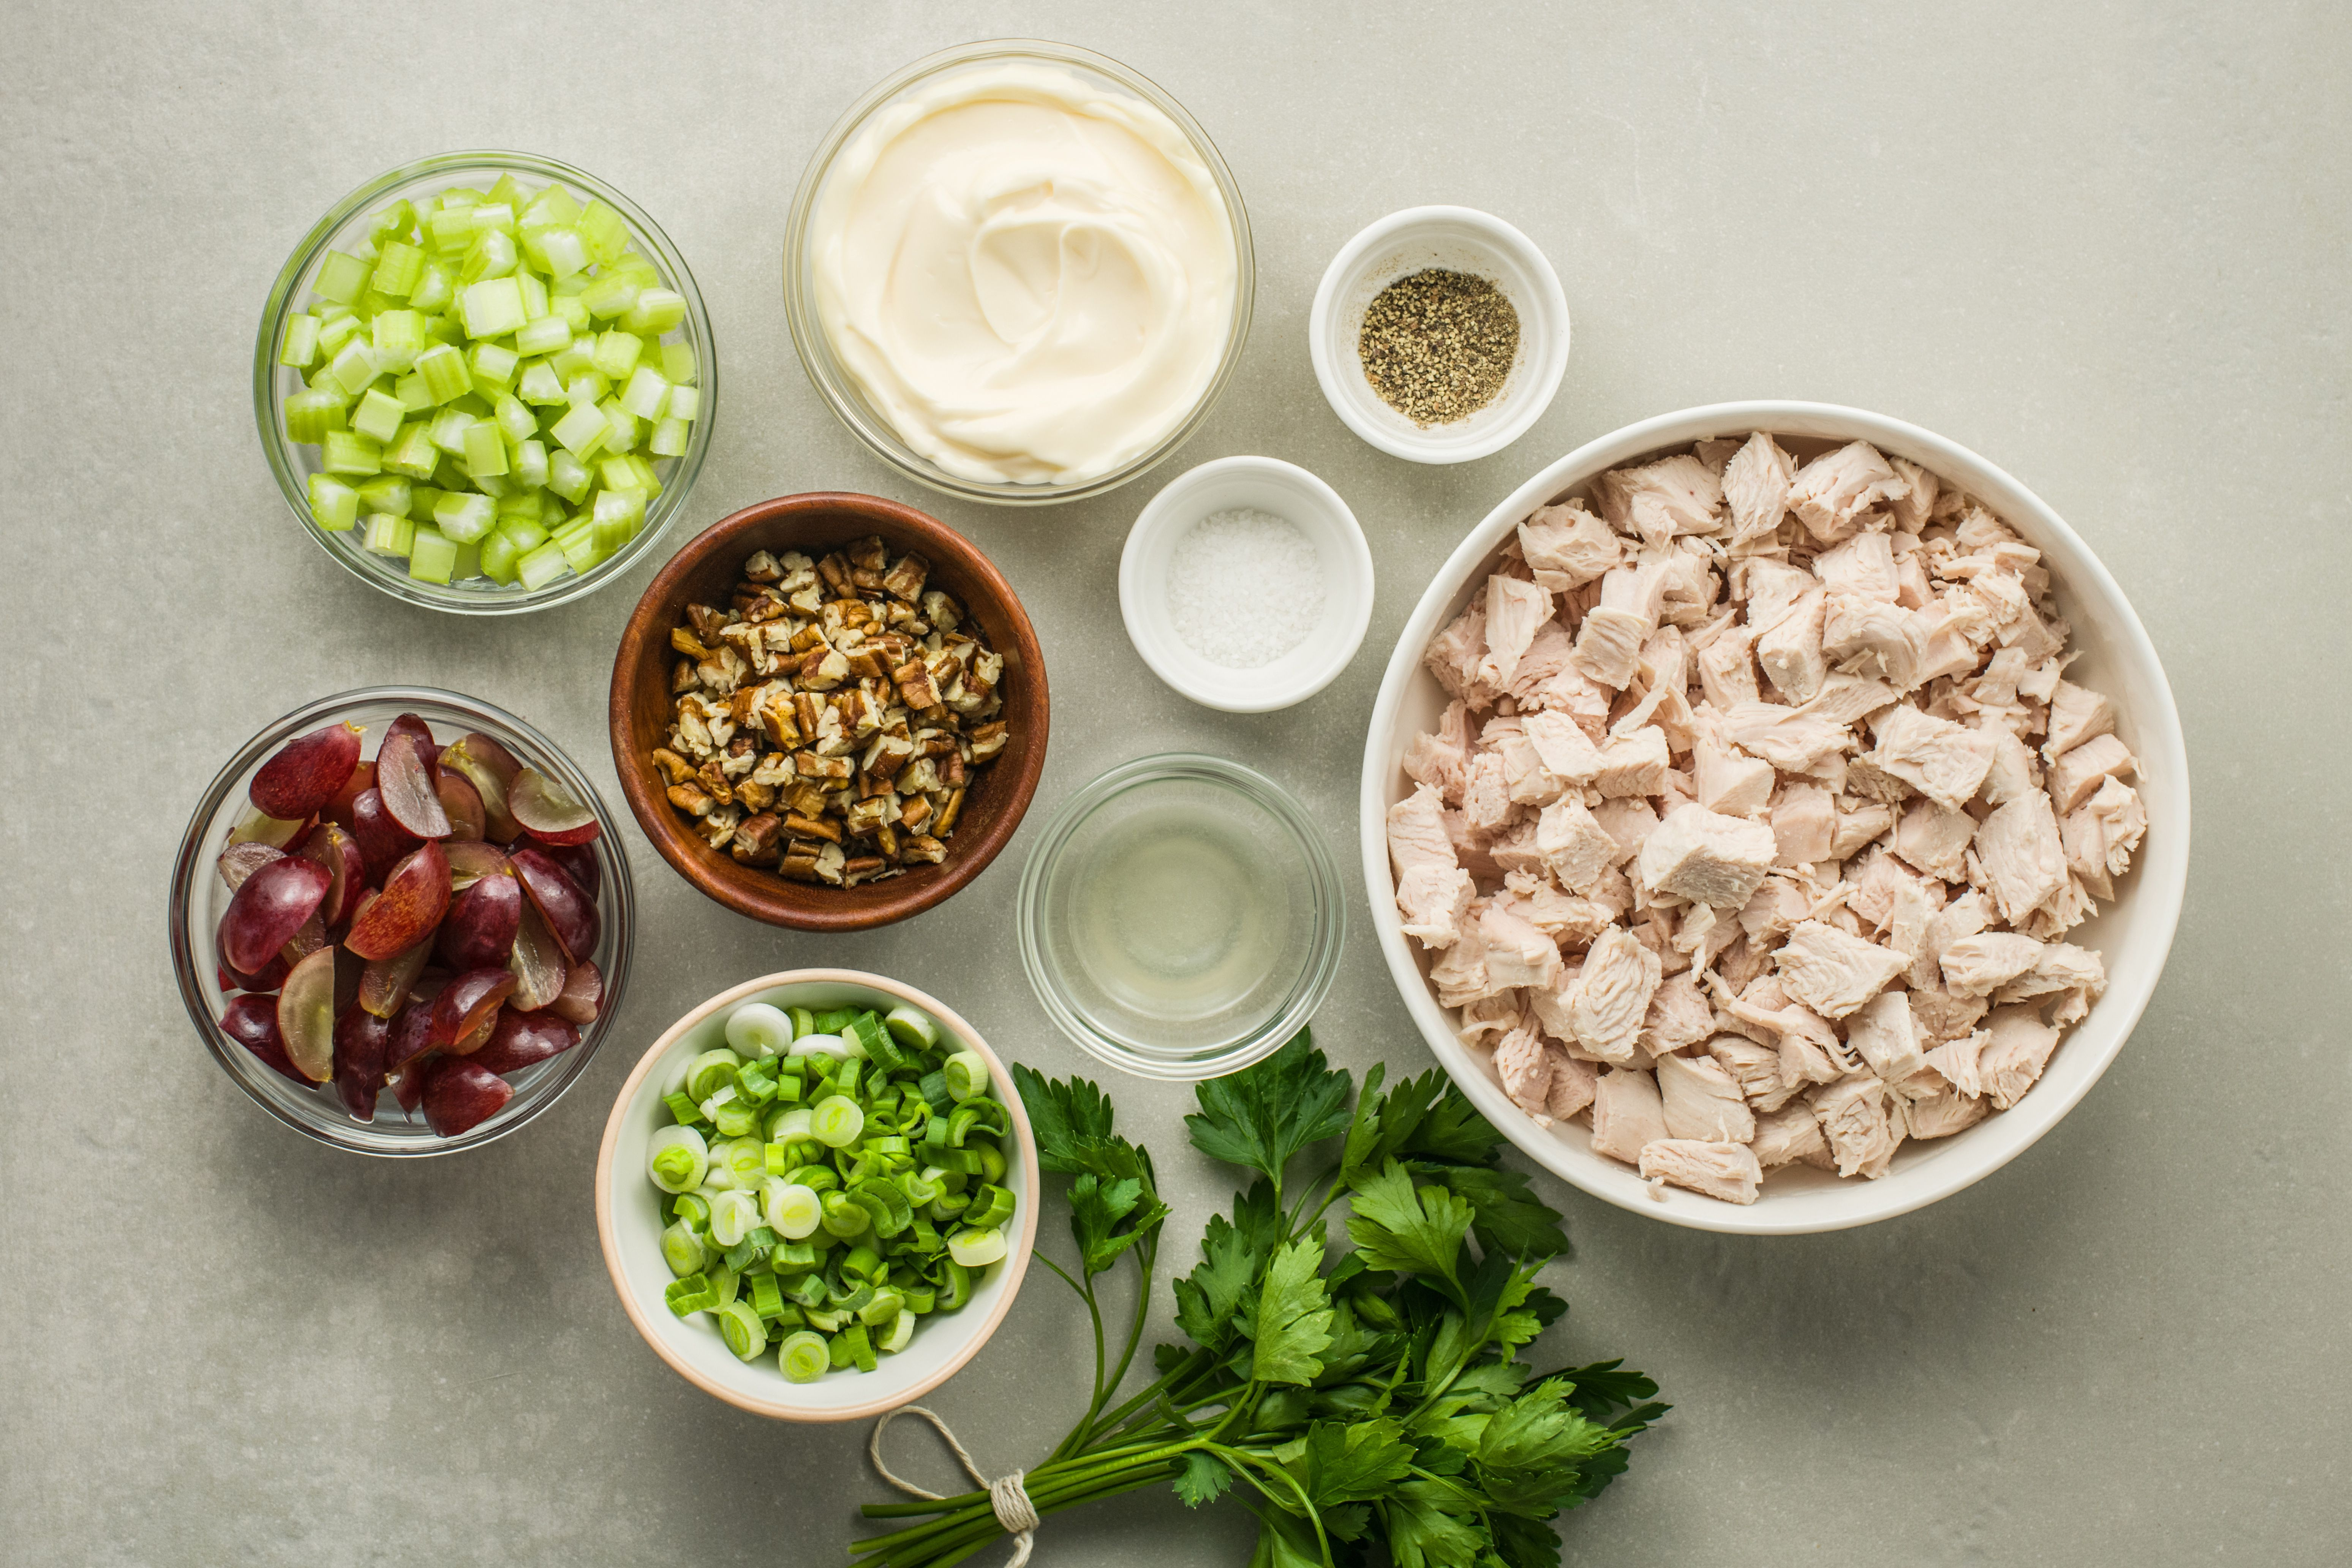 Ingredients for turkey salad with red grapes